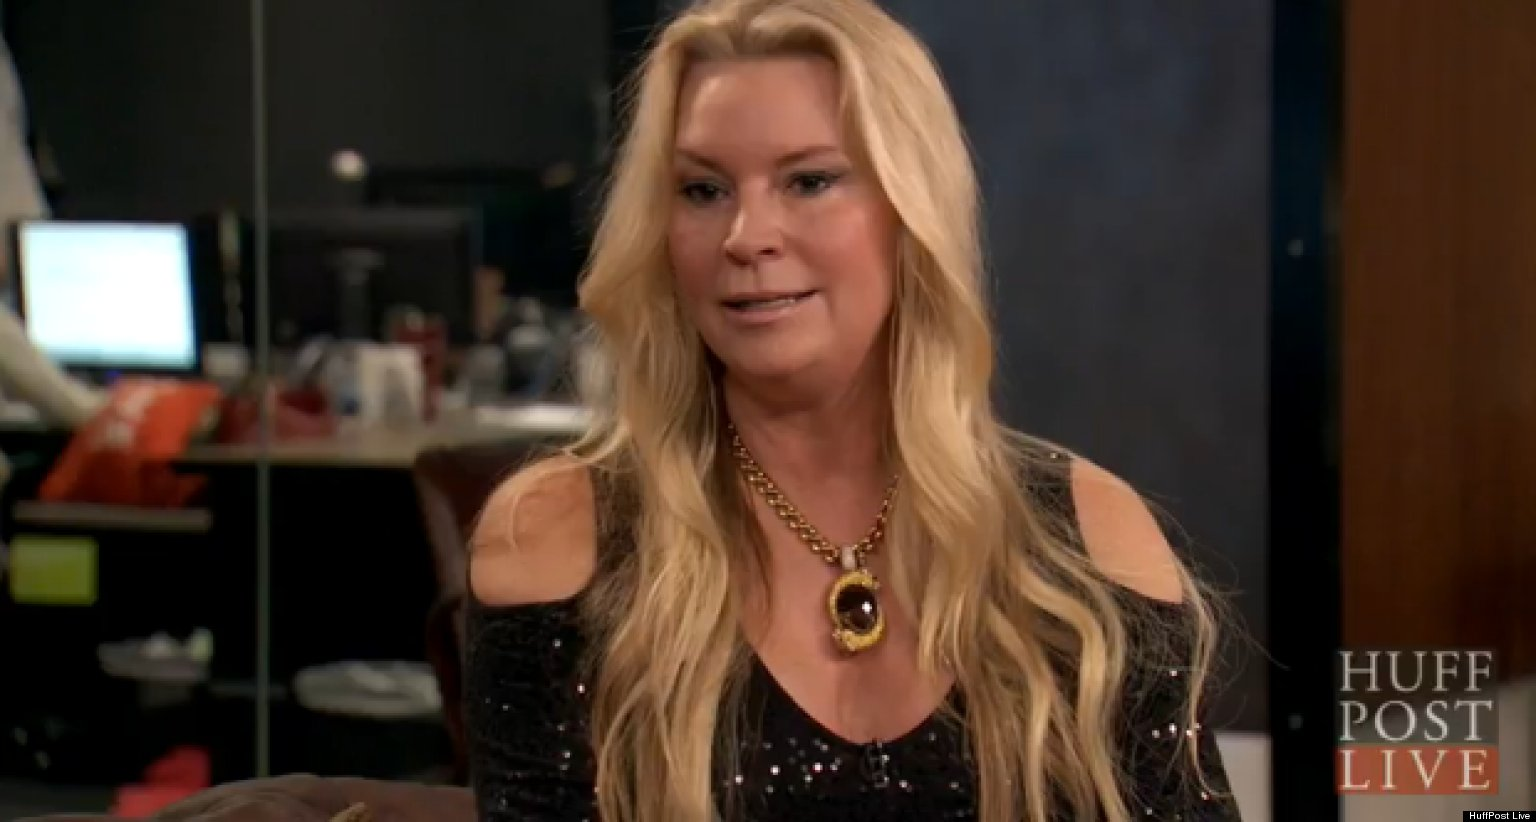 WATCH: 'Queen Of Versailles' Star Confesses To 'A Couple' Dates With Donald Trump